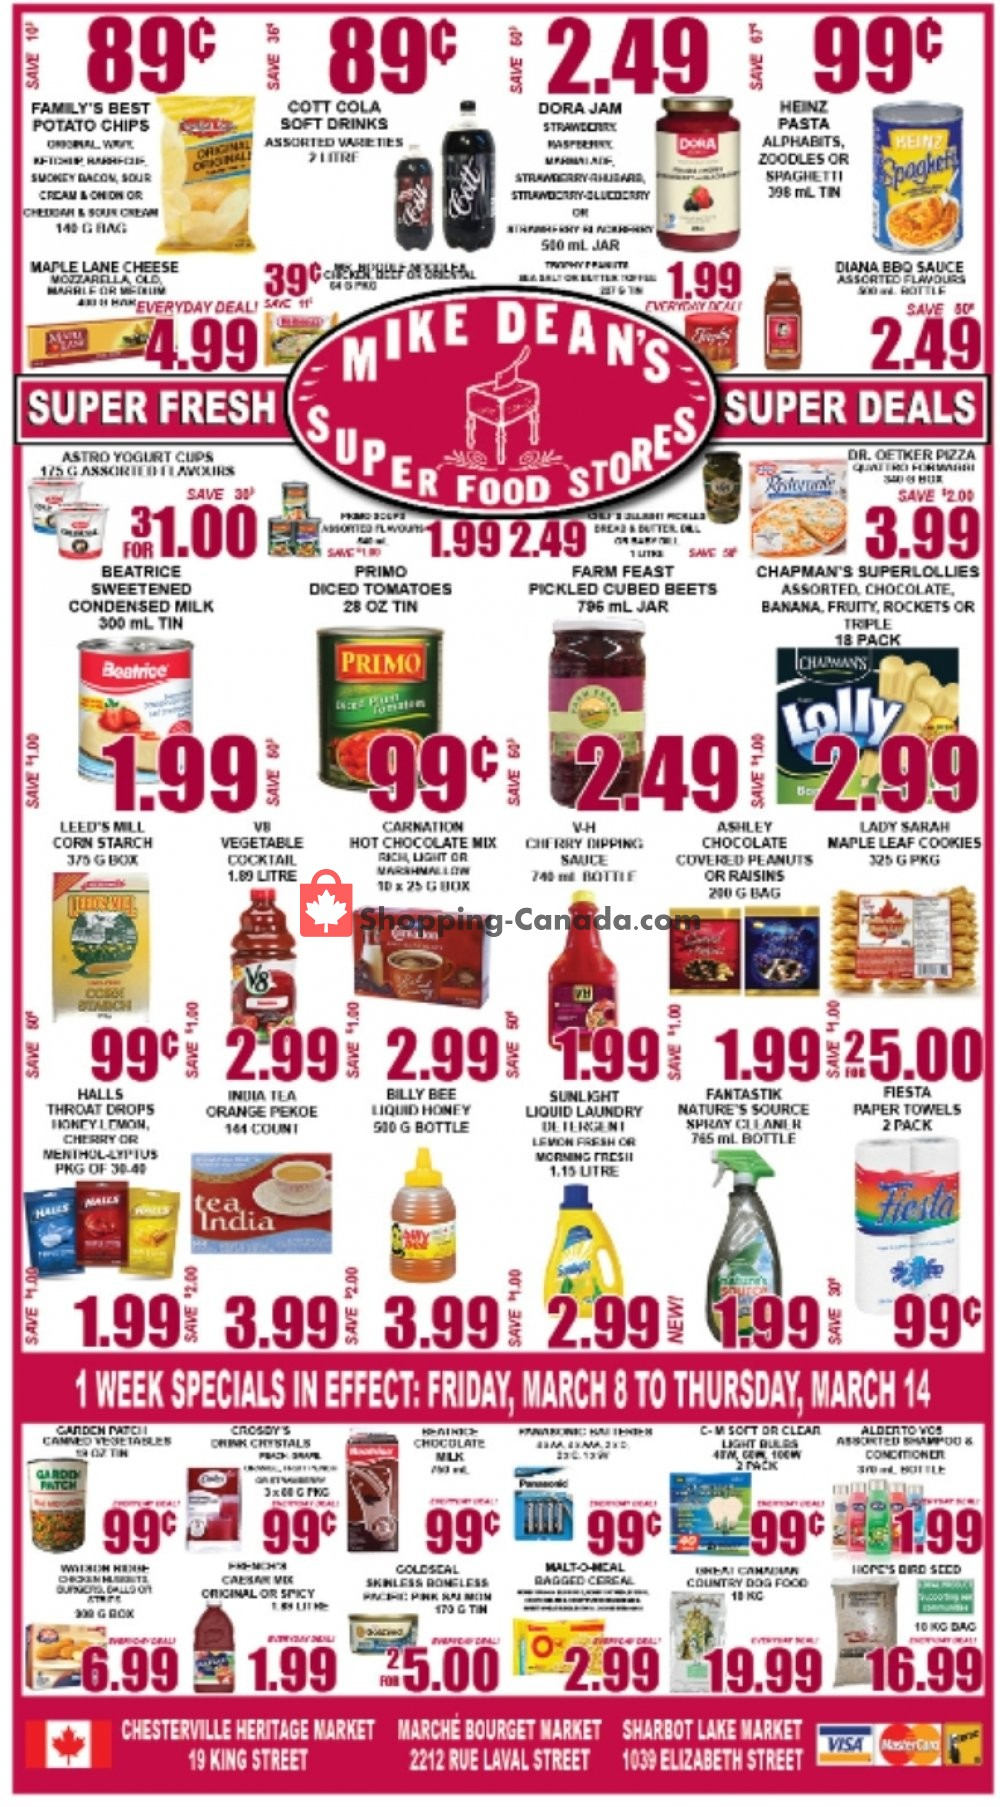 Flyer Mike Dean's Super Food Stores Canada - from Friday March 8, 2019 to Thursday March 14, 2019